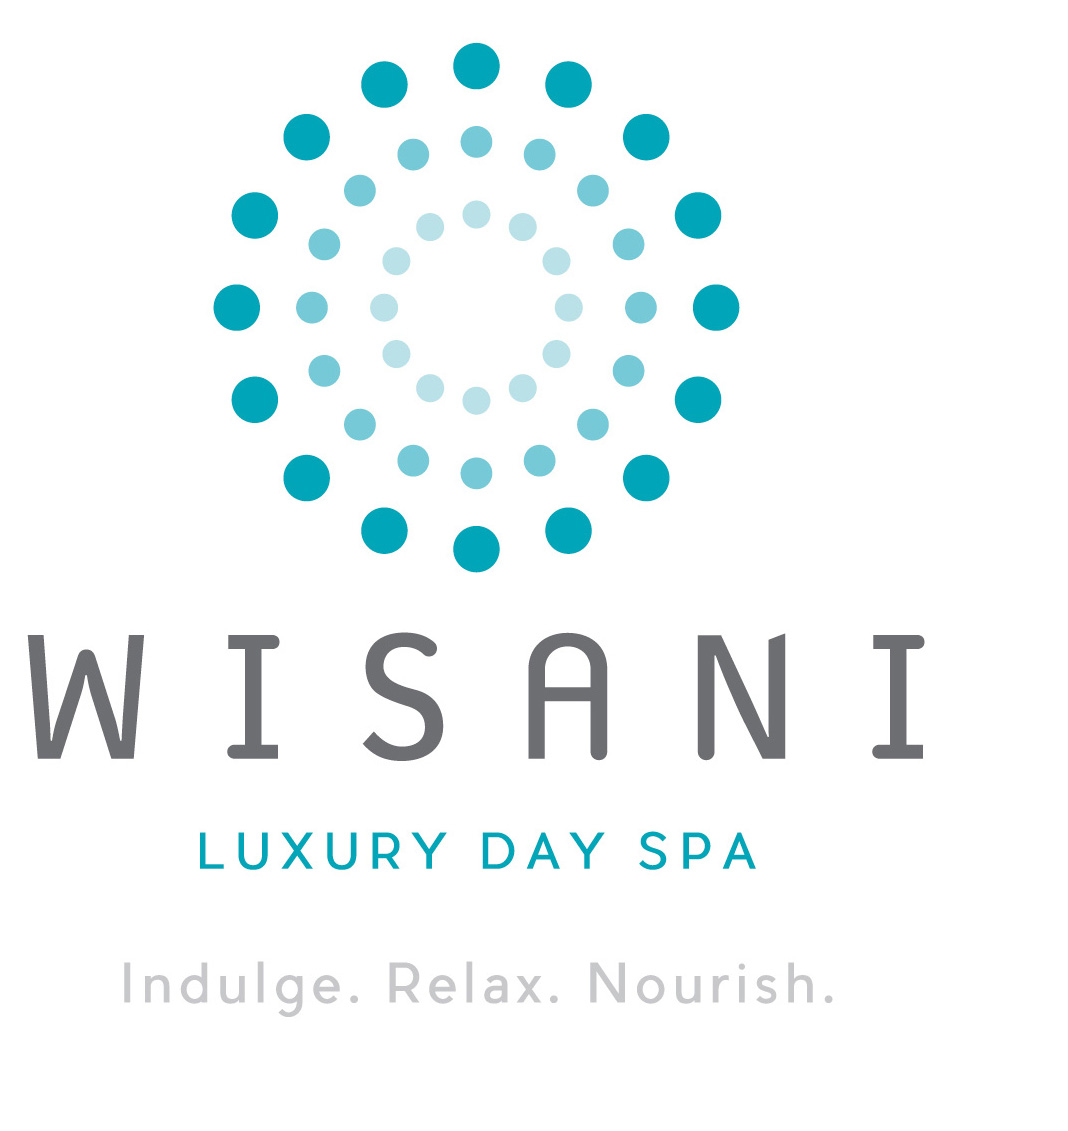 Wisani Day Spa